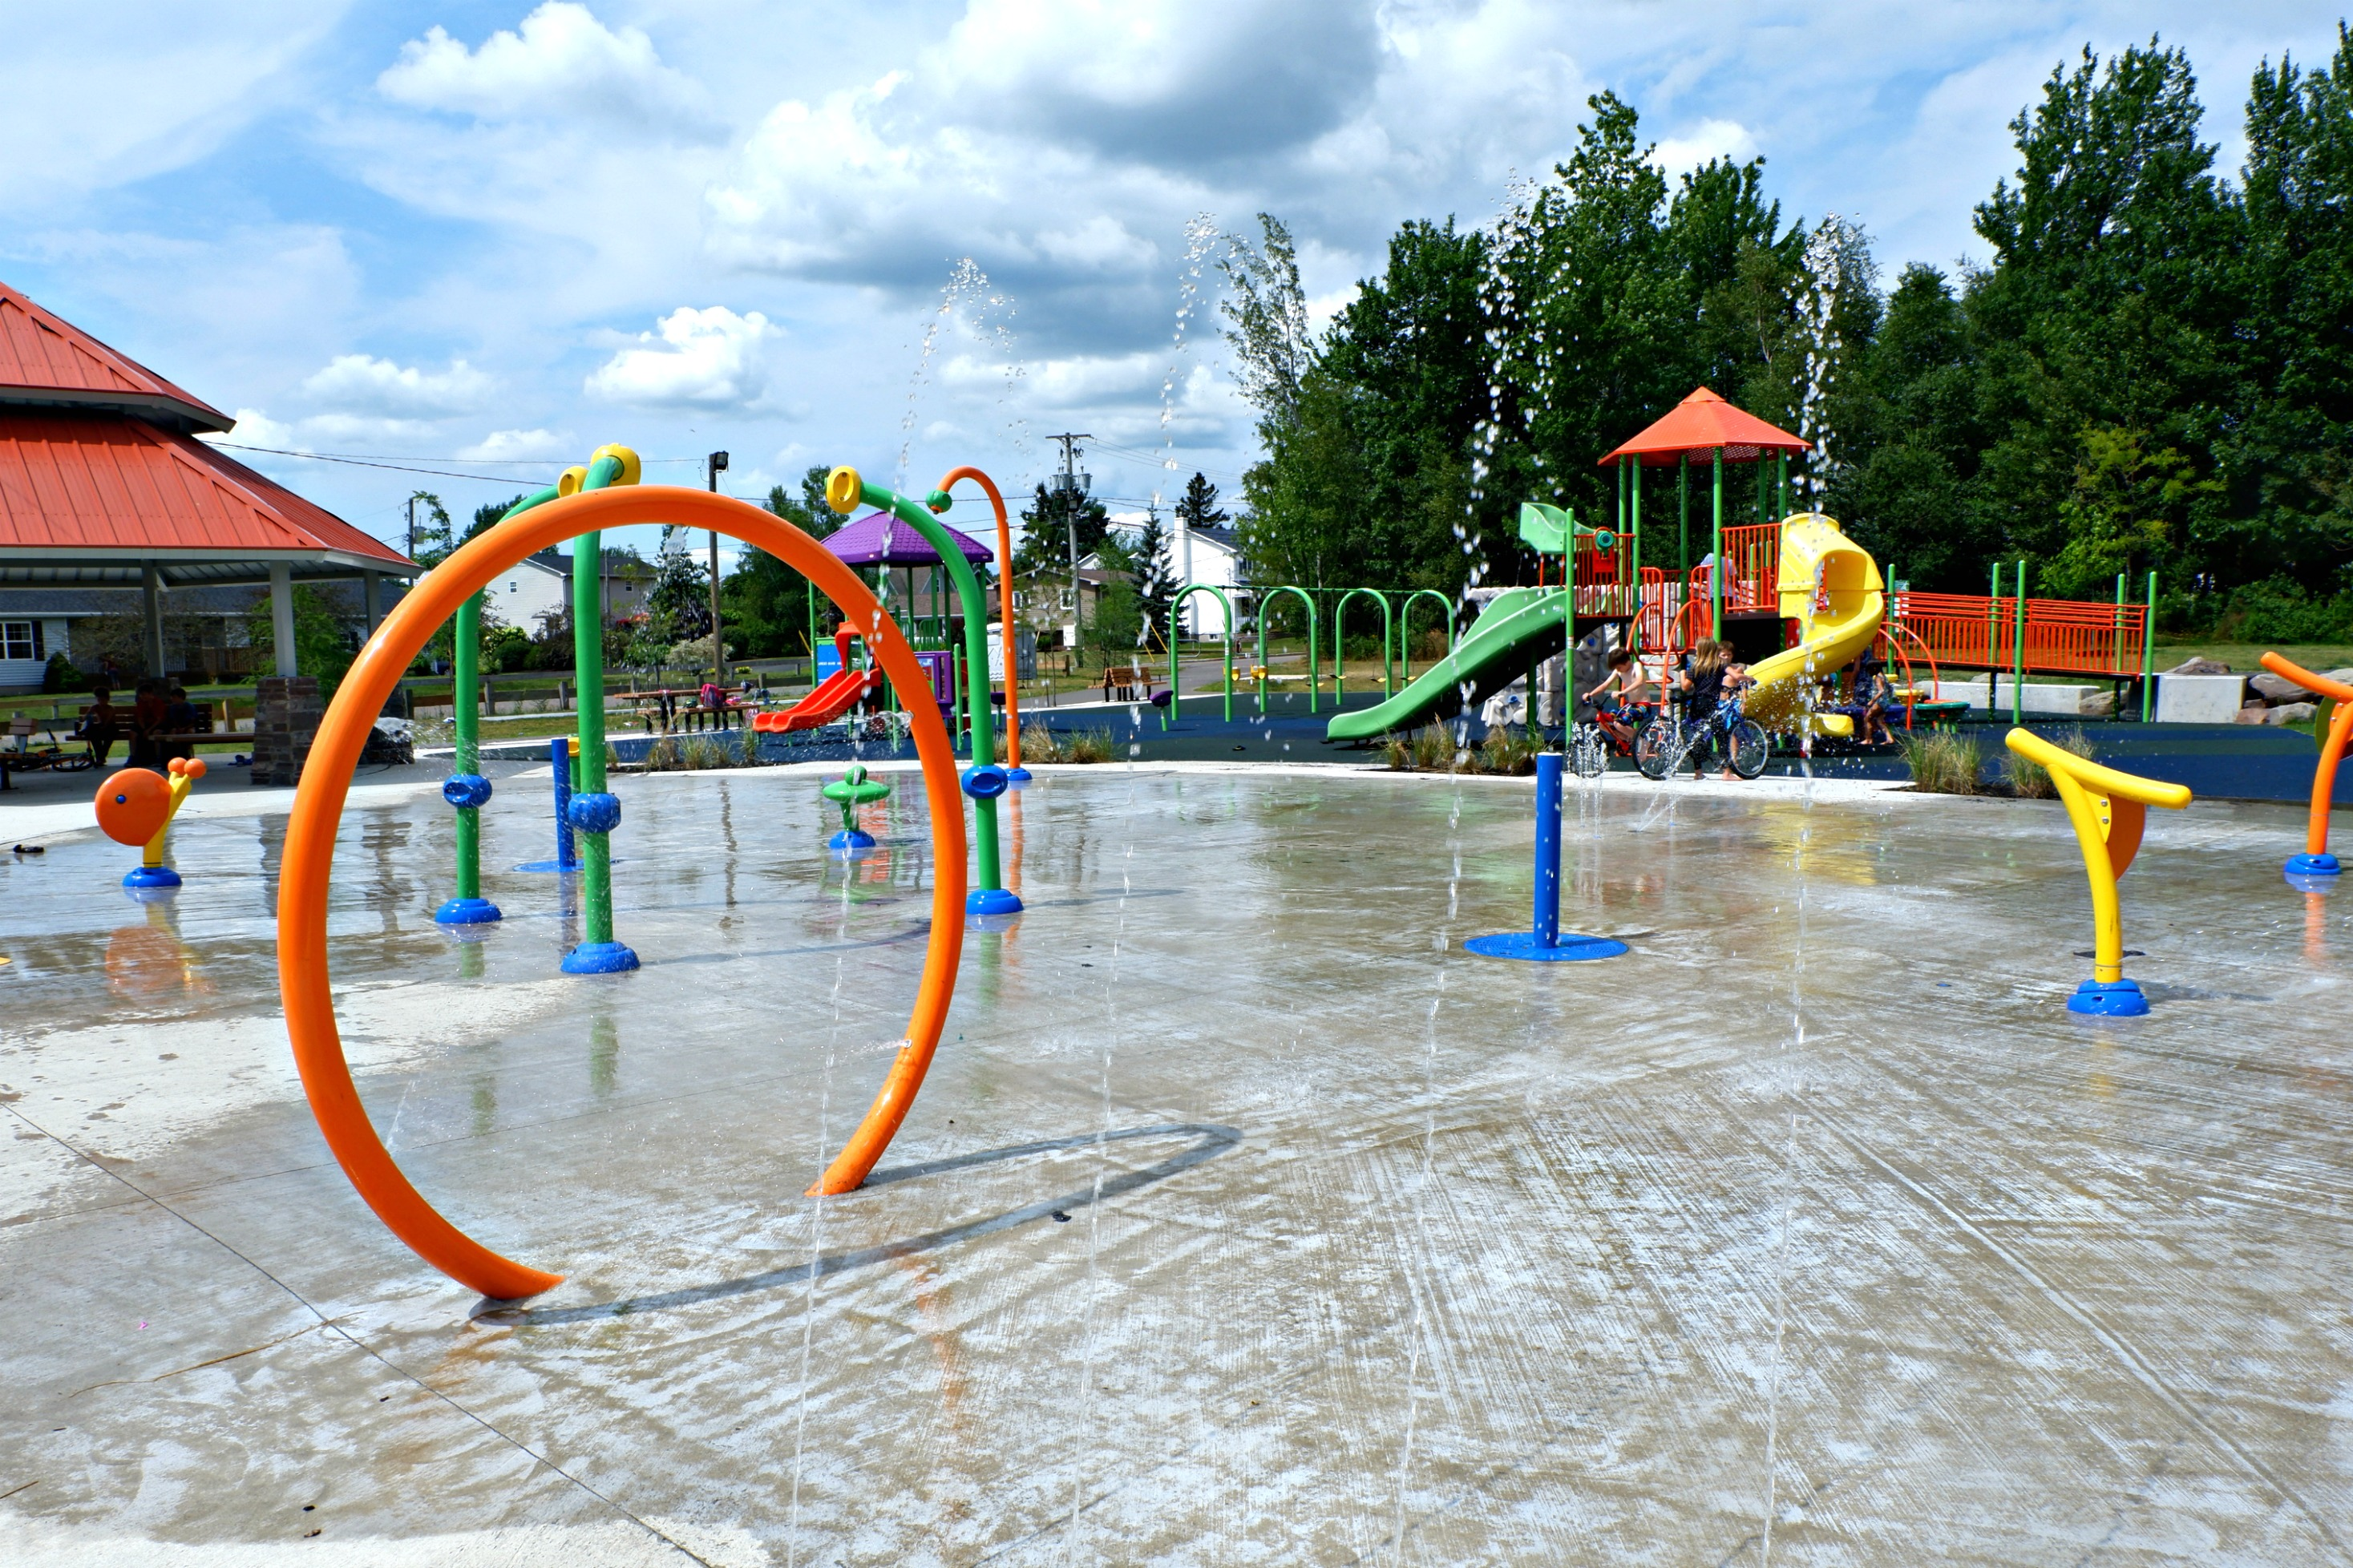 fairview knoll playground park moncton splash pad pickle planet near highway splash play pad fun summer